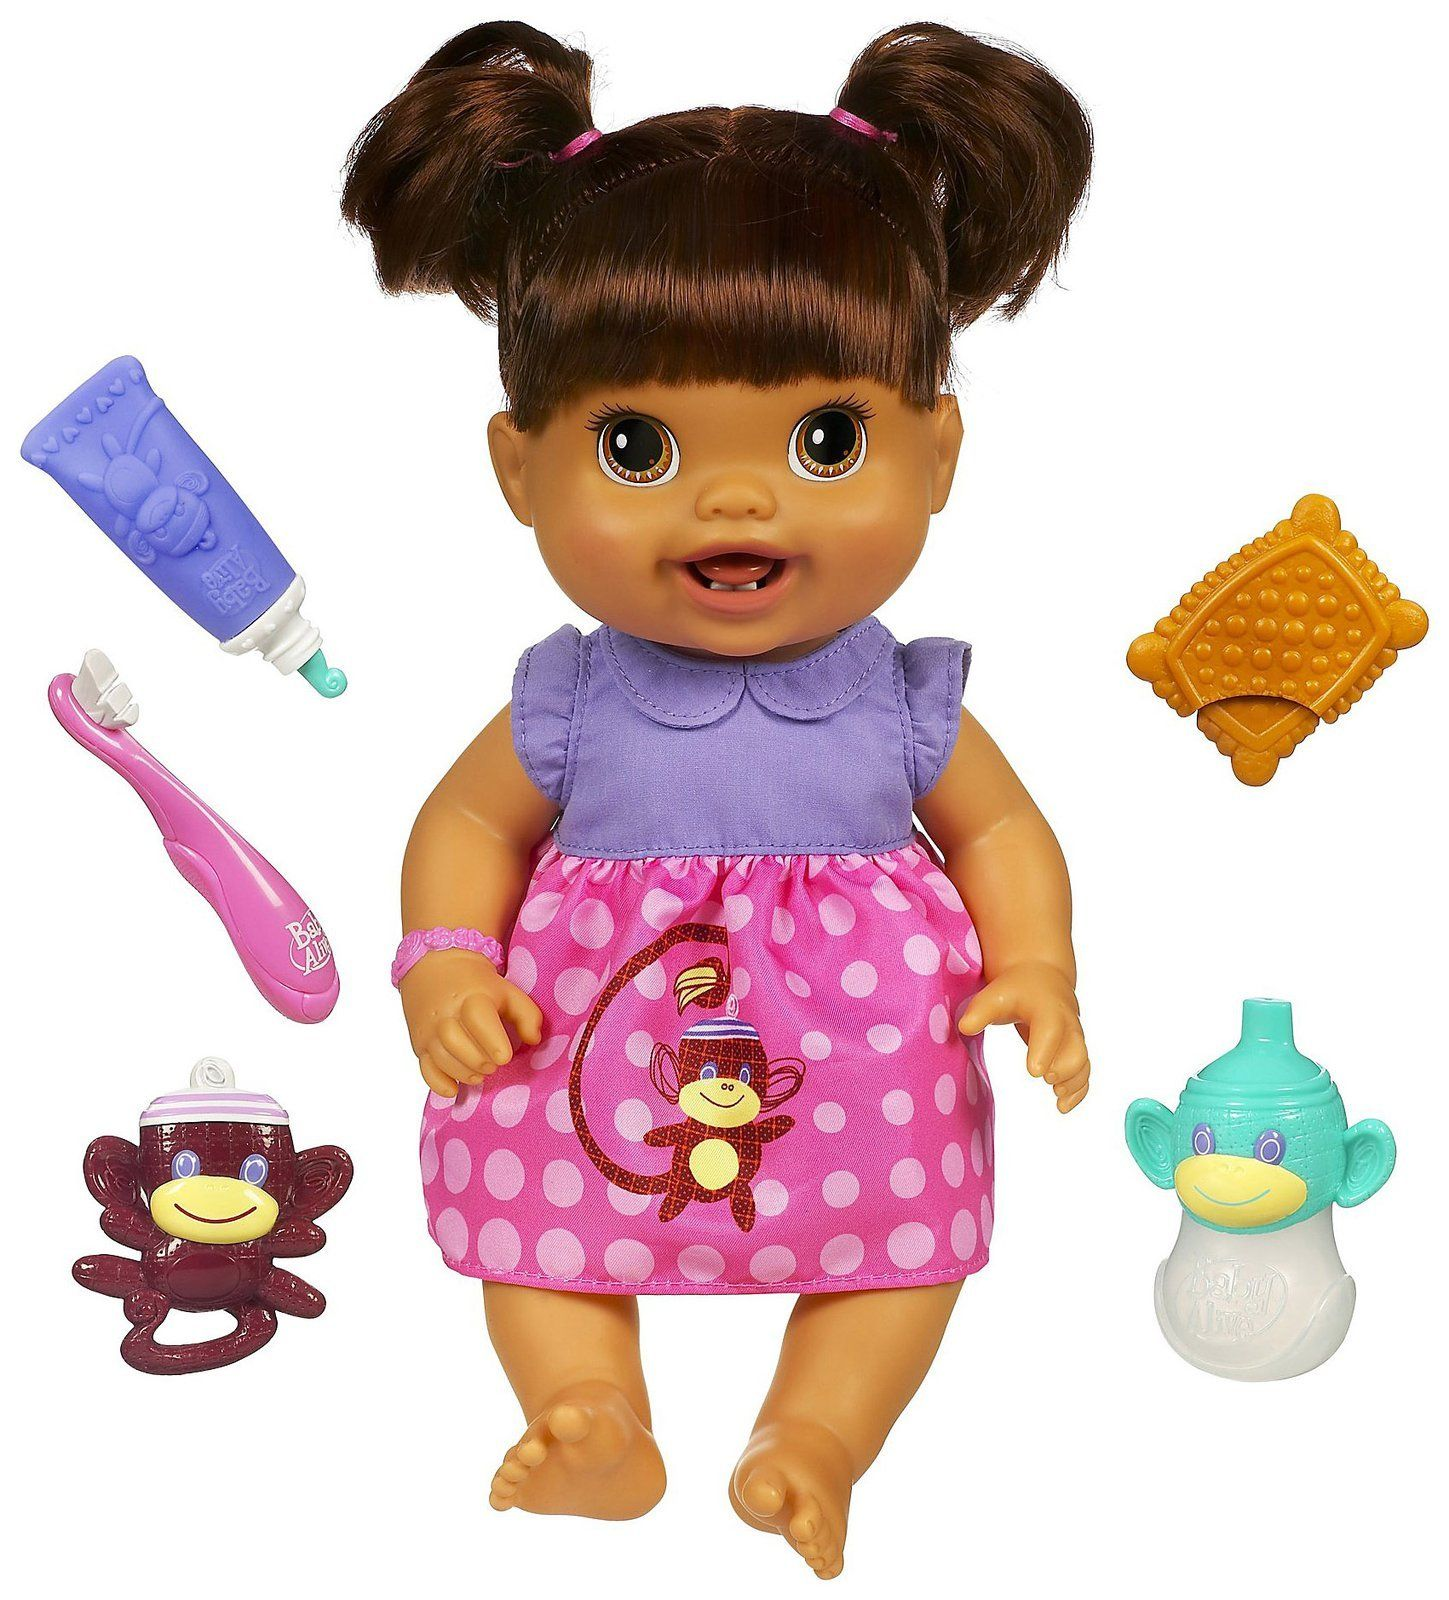 Baby Alive Baby S New Teeth Brunette Styles May Vary